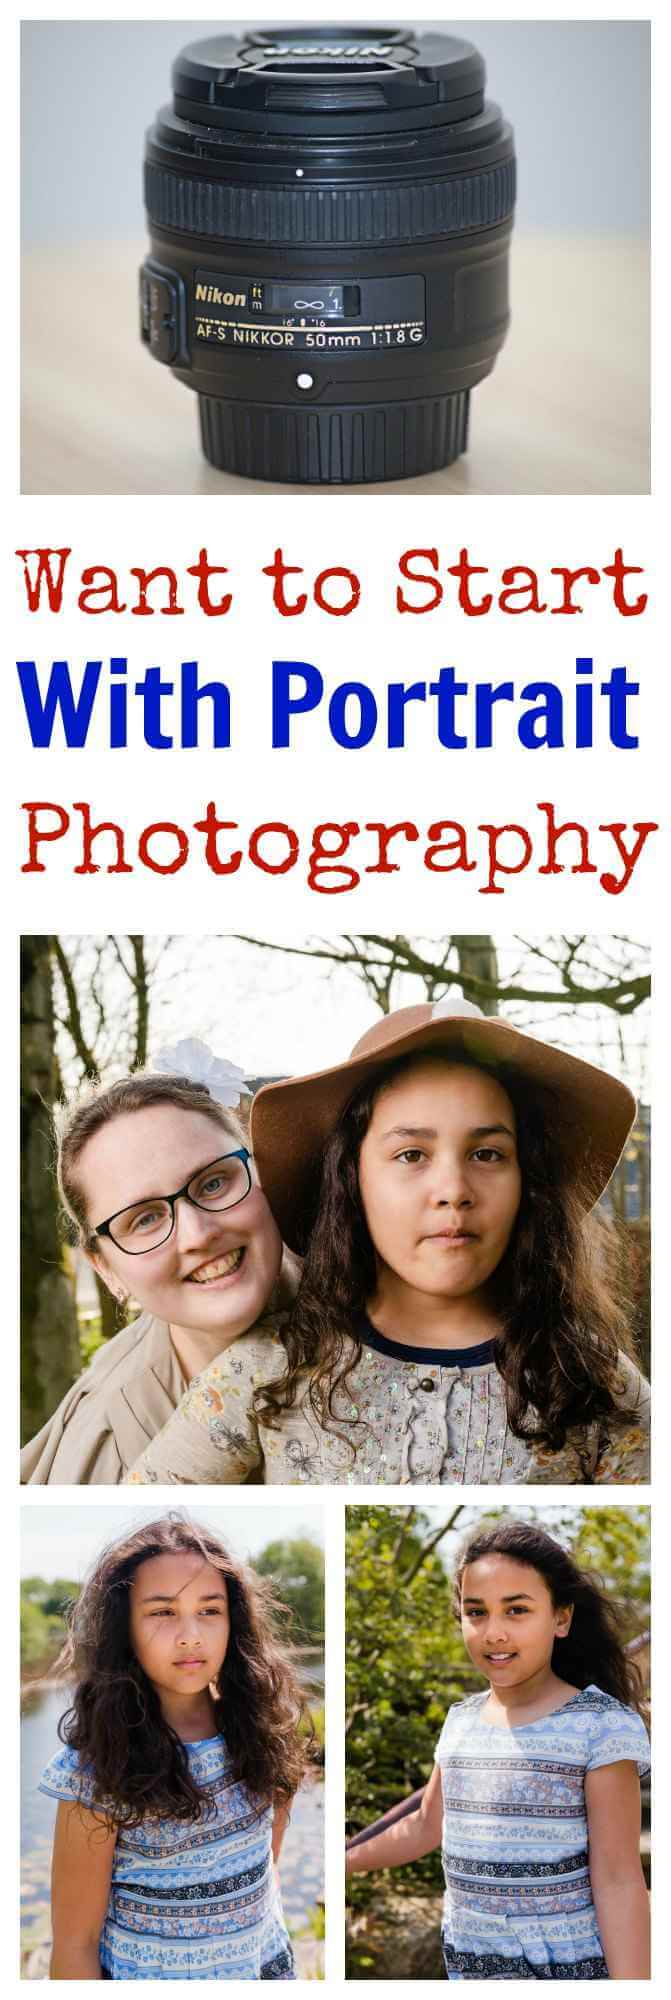 want-to-start-with-portrait-photography